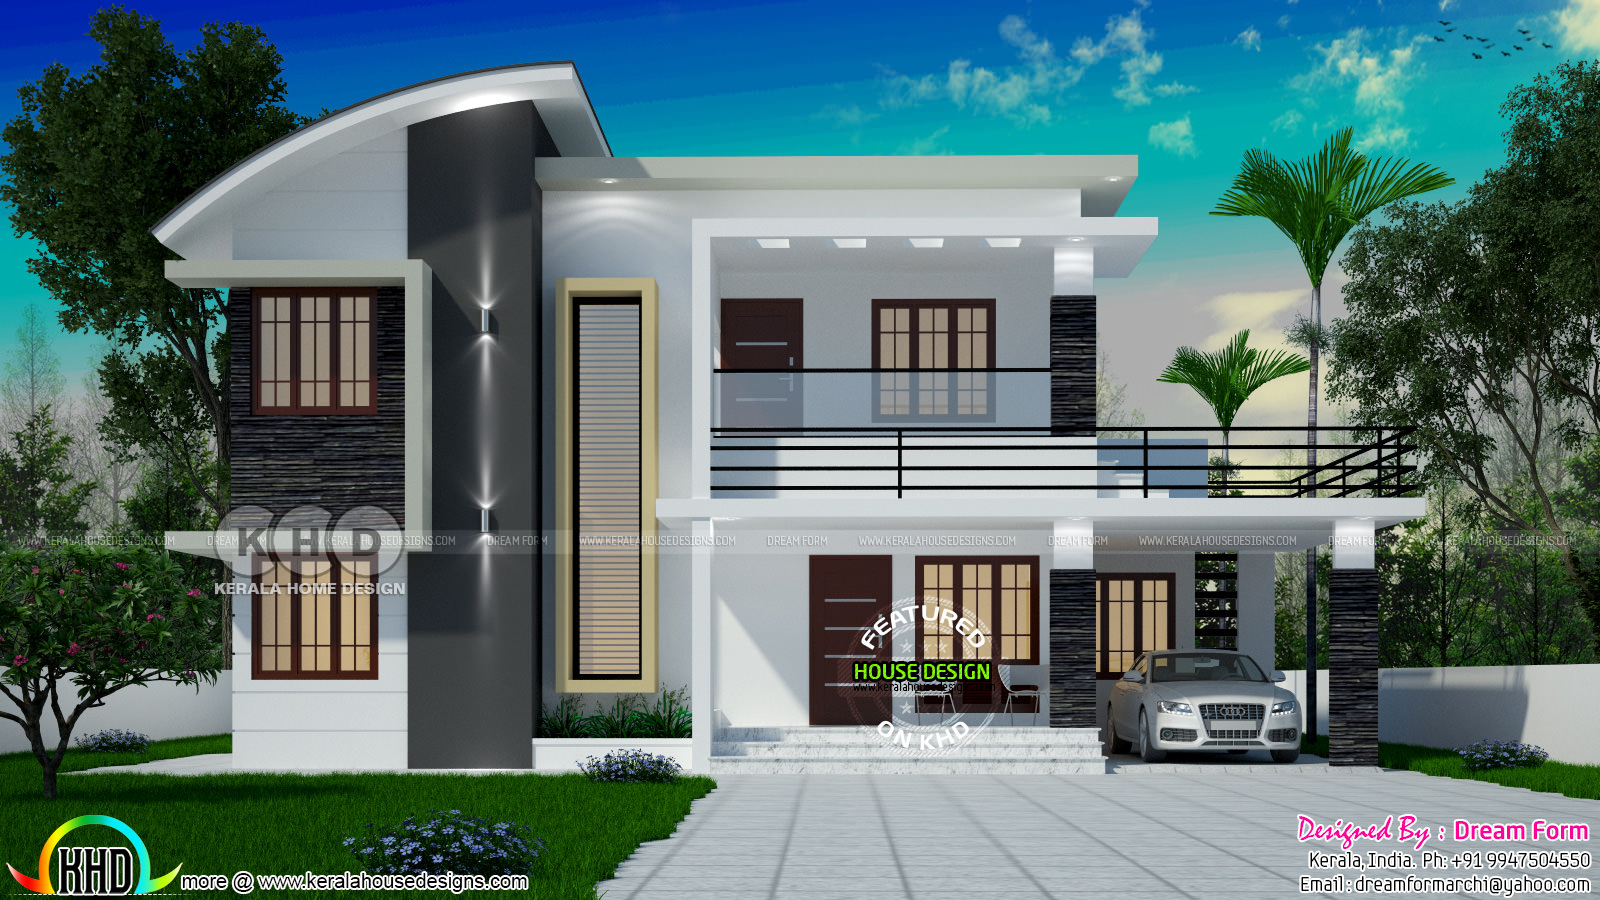 latest house designs 1750 square feet 4 bedroom double floor new modern home 1991 square feet 4 bedroom modern house plan